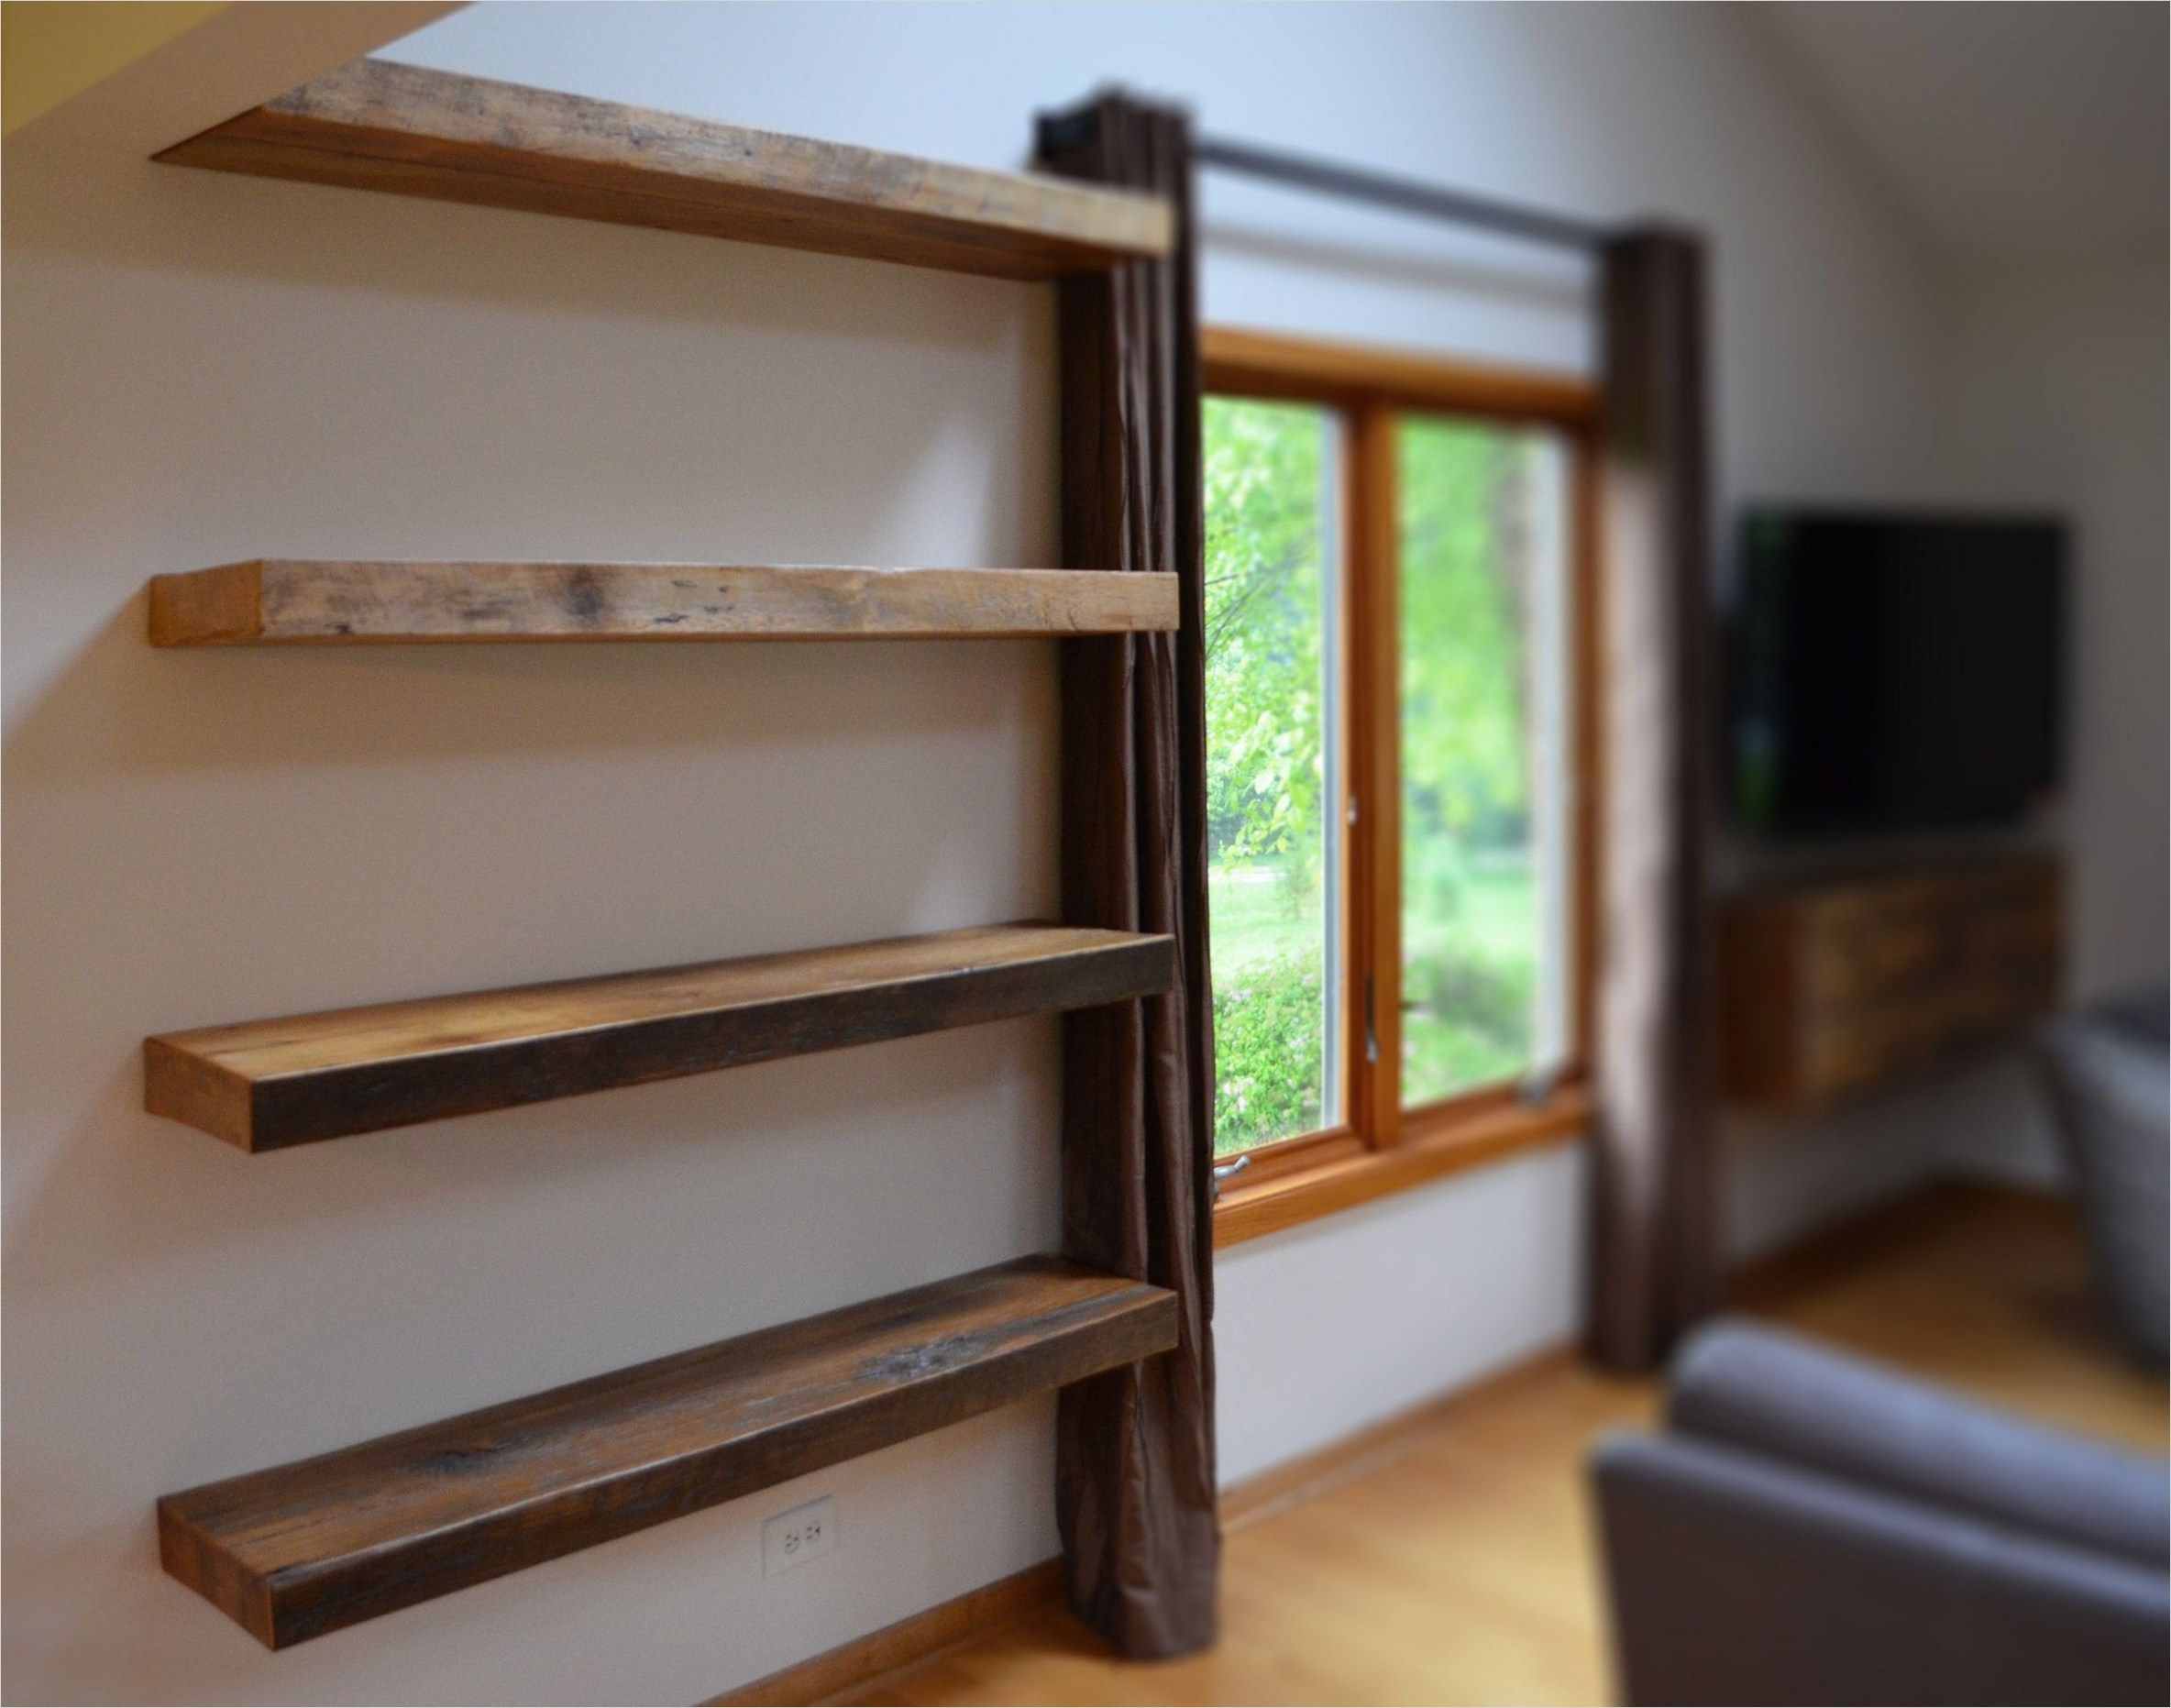 45 Creative Rustic Wall Mounted Bookshelves 84 Rustic Floating Shelves